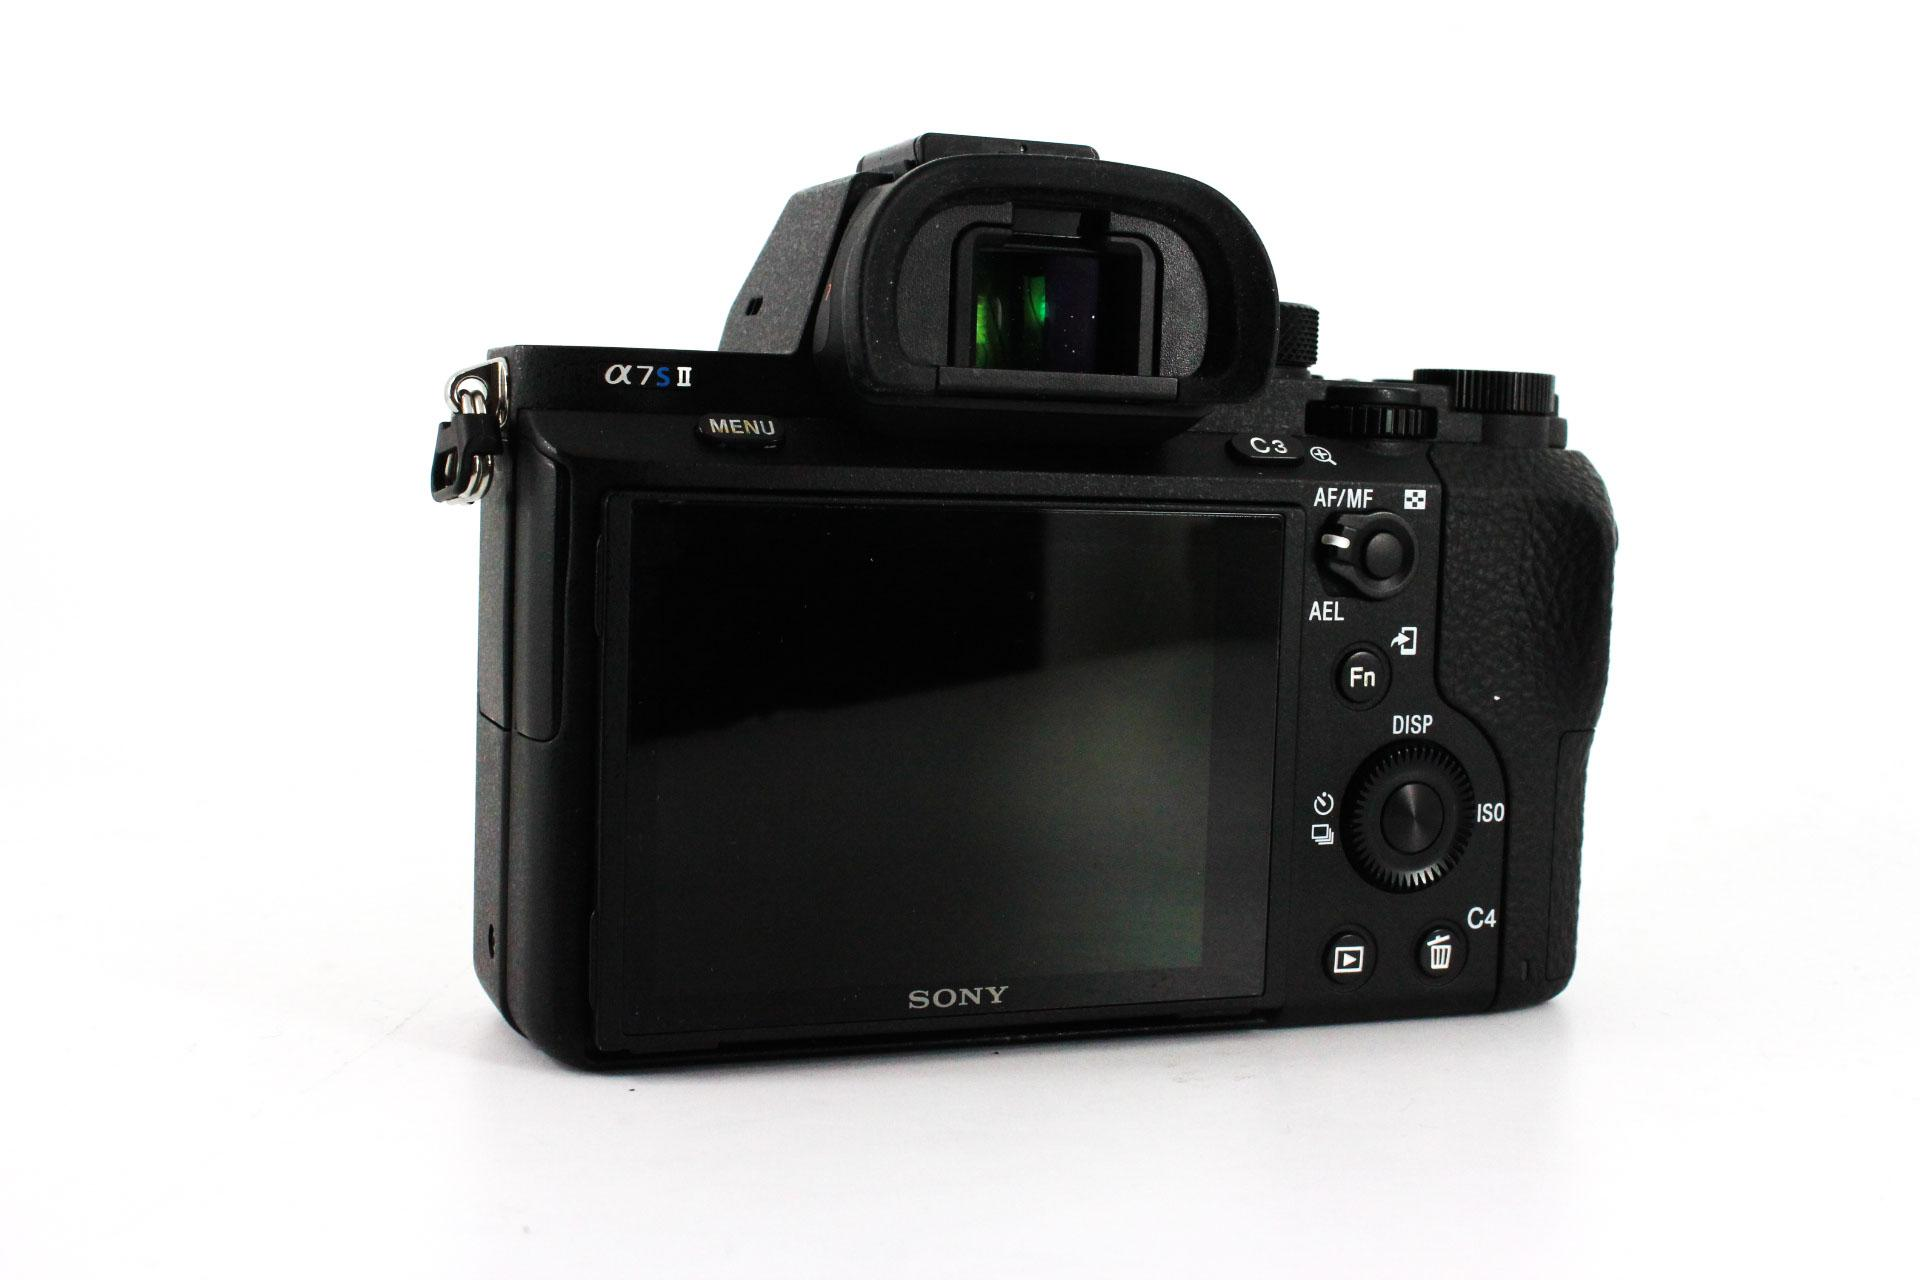 street photography cameras should be fast a7s ii back image